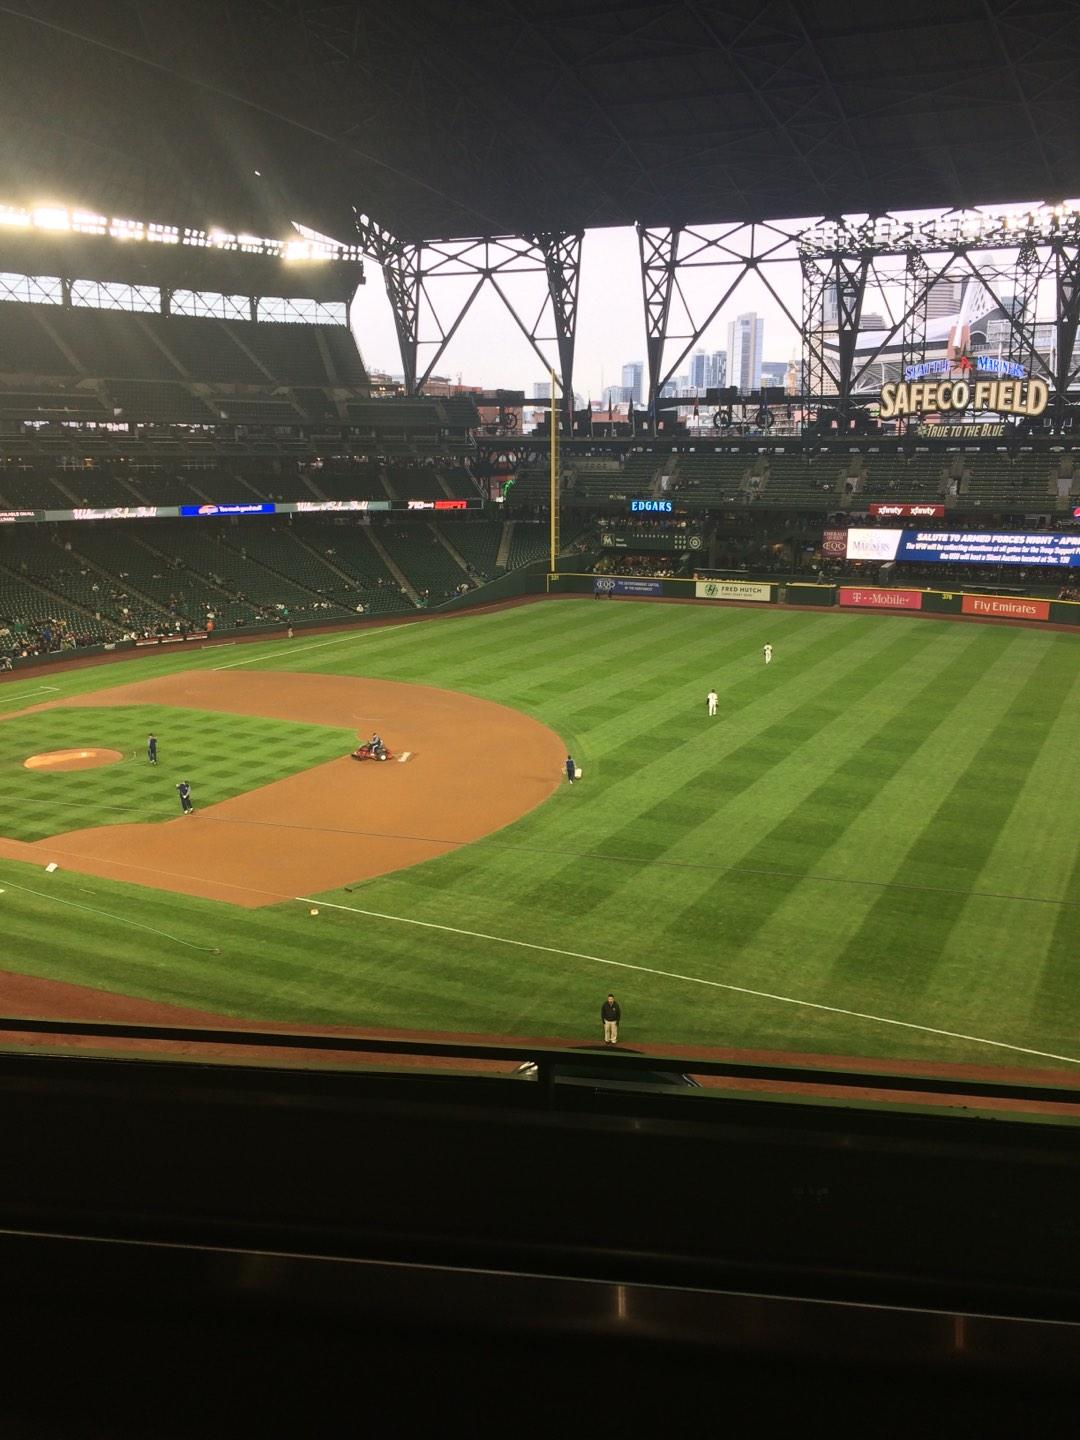 T-Mobile Park Section 11 Row 2 Seat 4